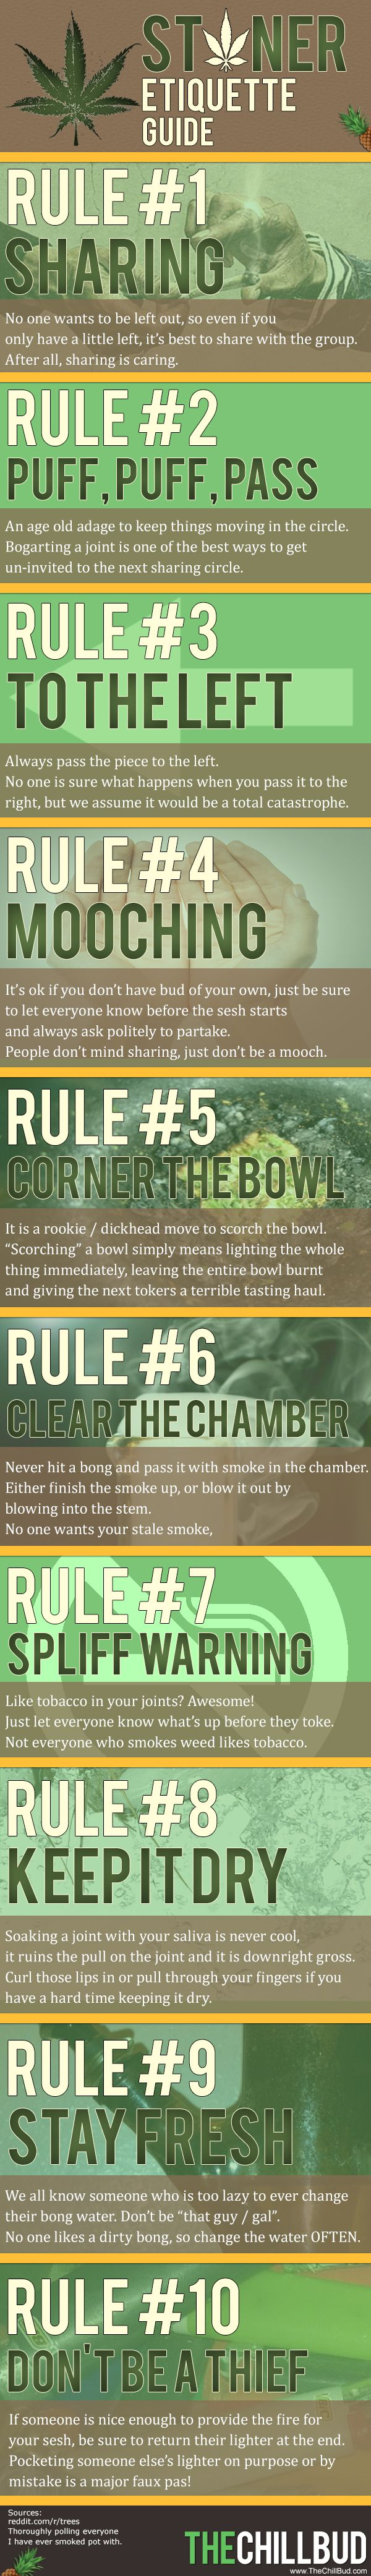 The Complete Stoner Etiquette Guide